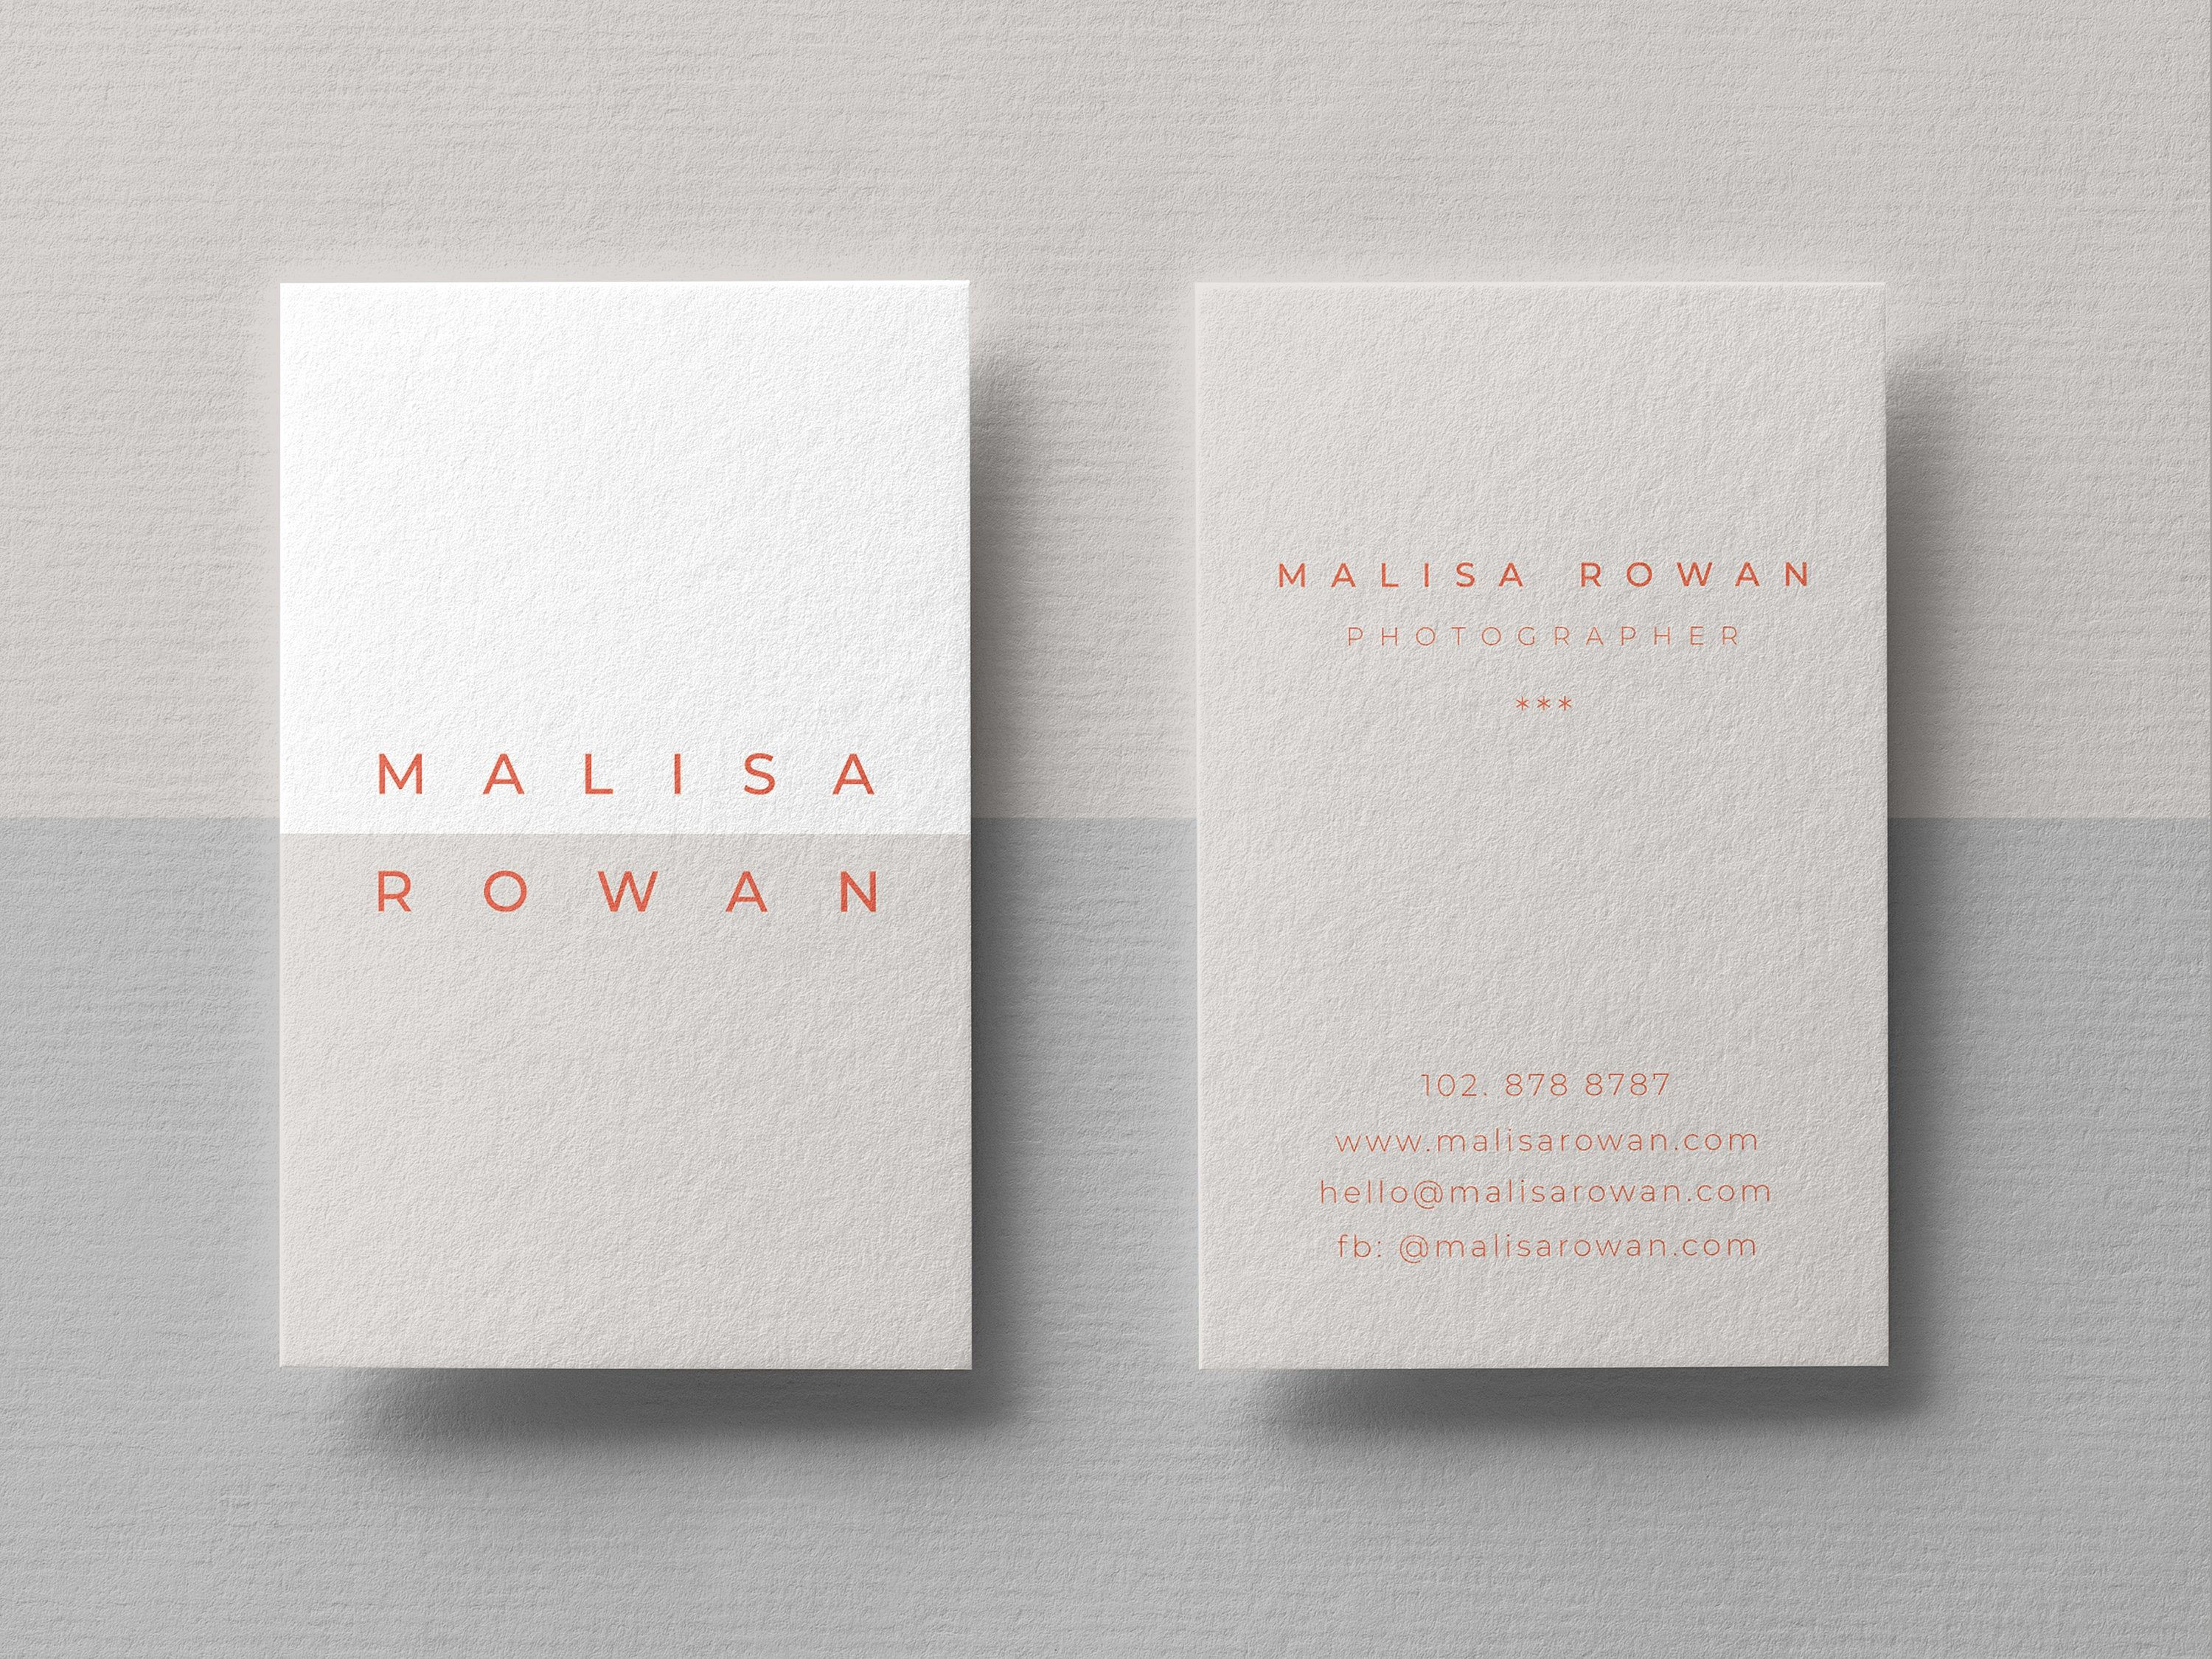 Business Cards Business Card Templates Editable Business Etsy Vertical Business Cards Minimalist Business Cards Elegant Business Cards